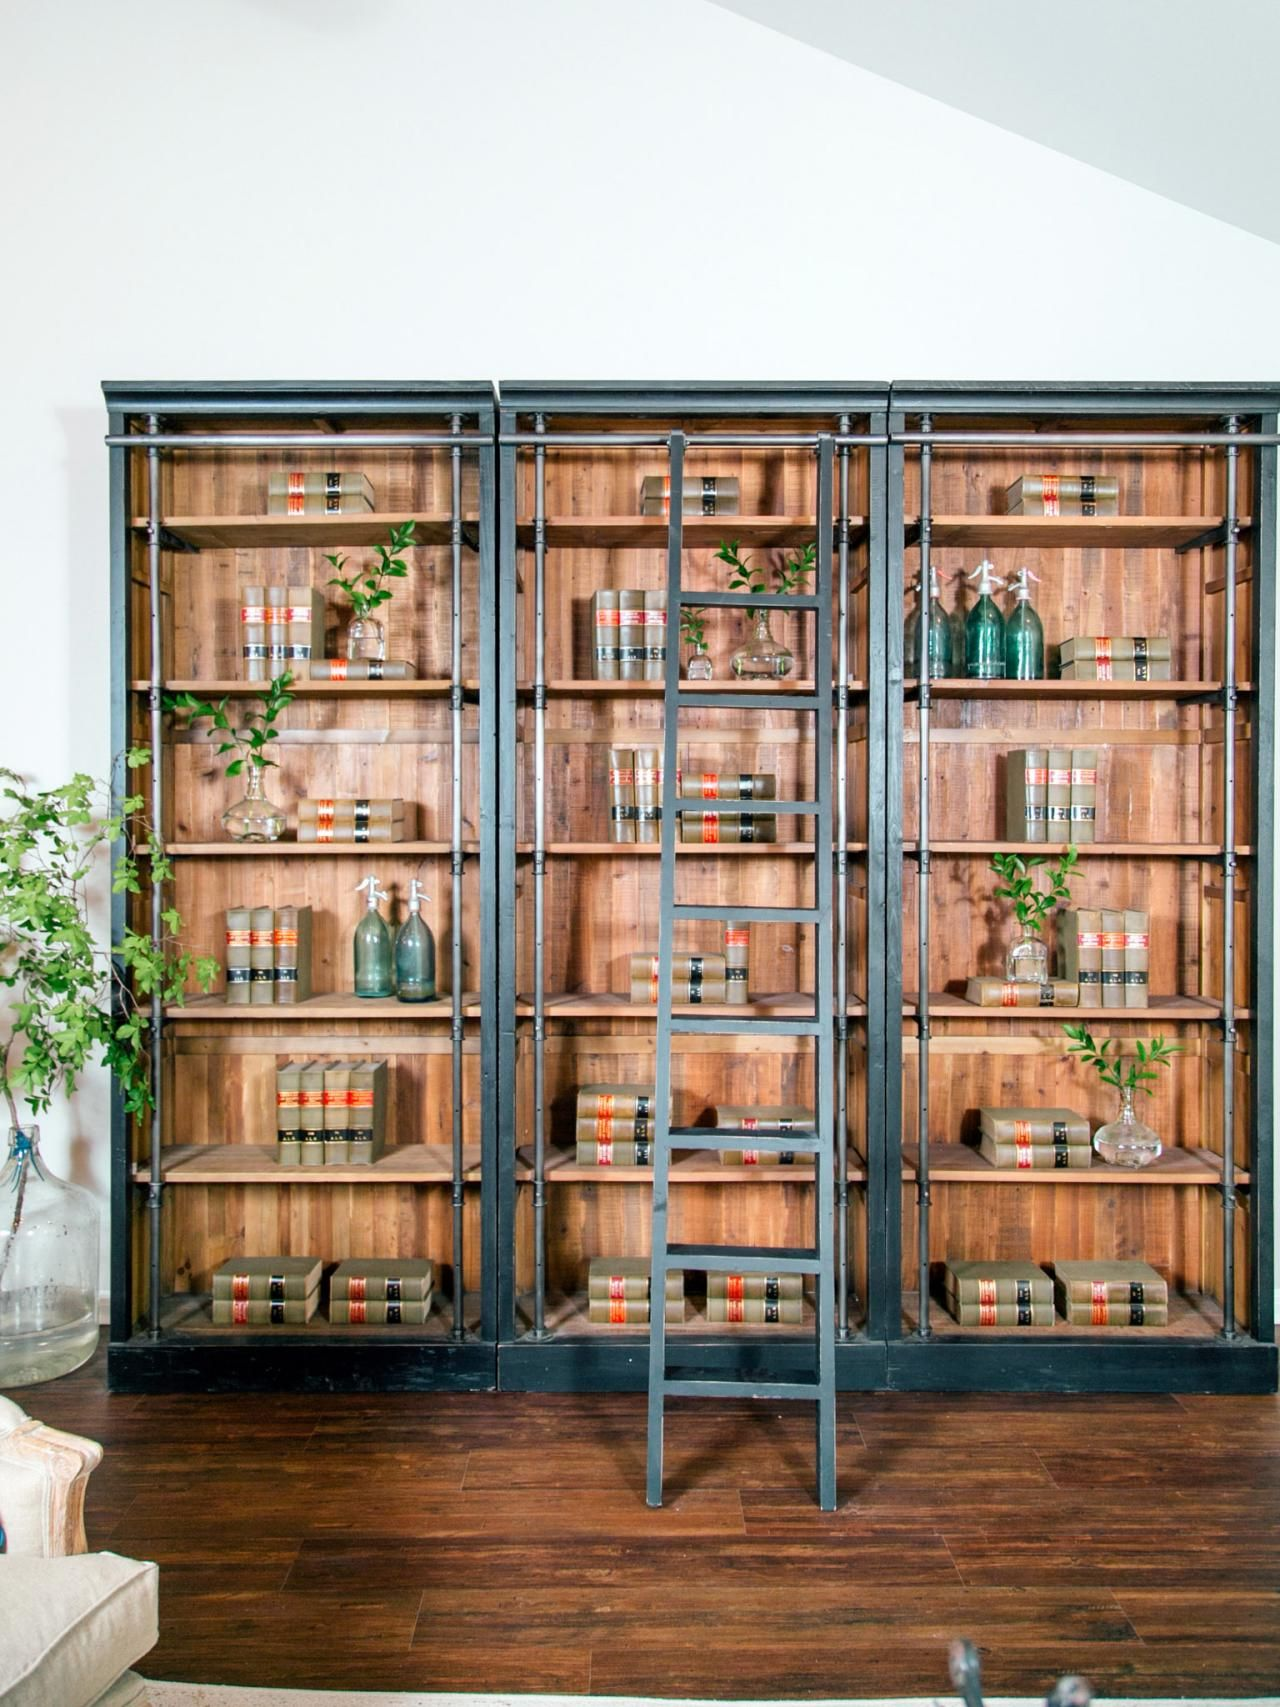 Design Rustic Bookcase love fixer uppers perfectly styled bookshelves our tips to up your shelfie game rustic bookshelfbookshelf